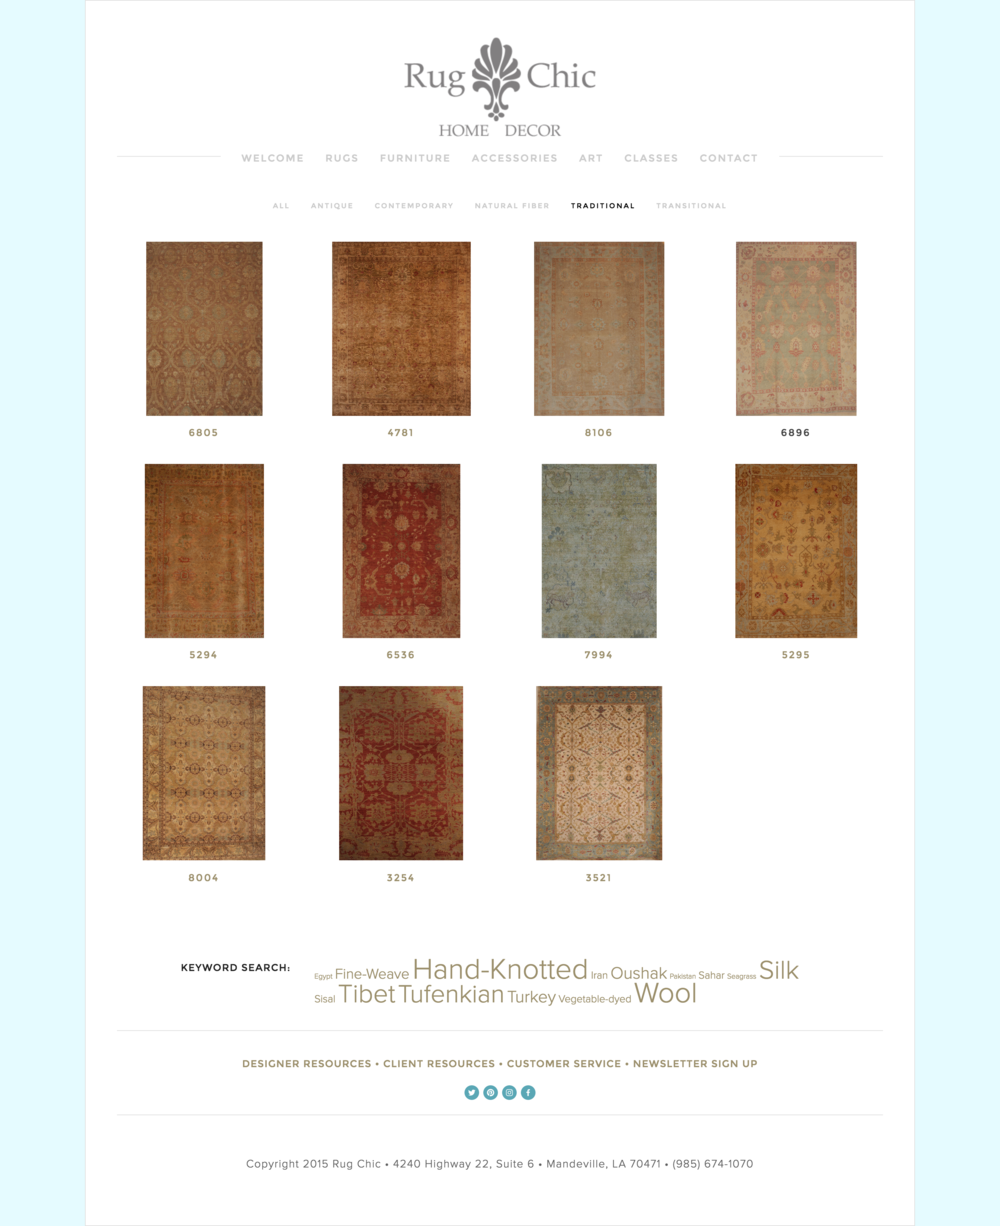 screencapture-rugchic-all-rugs-1474845828581.png